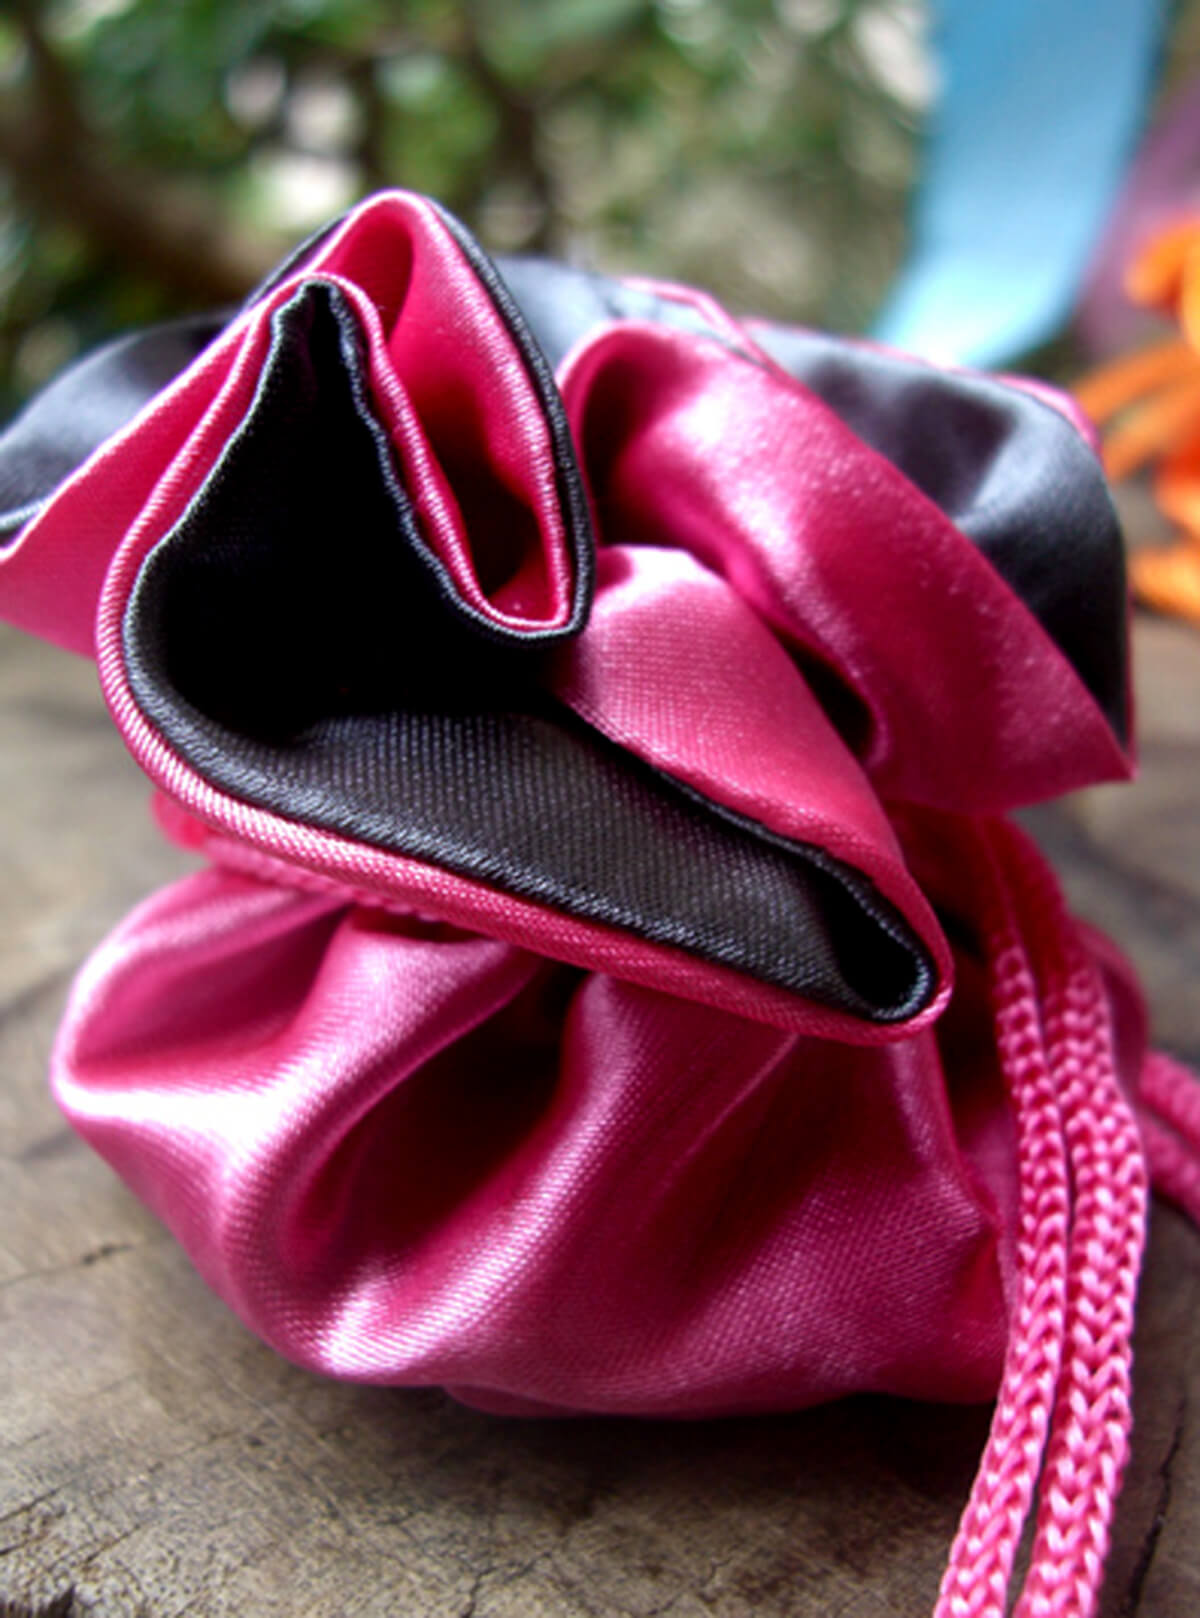 12 Tiny Satin Reversible Favor Bags  Fuchsia & Dark Grey